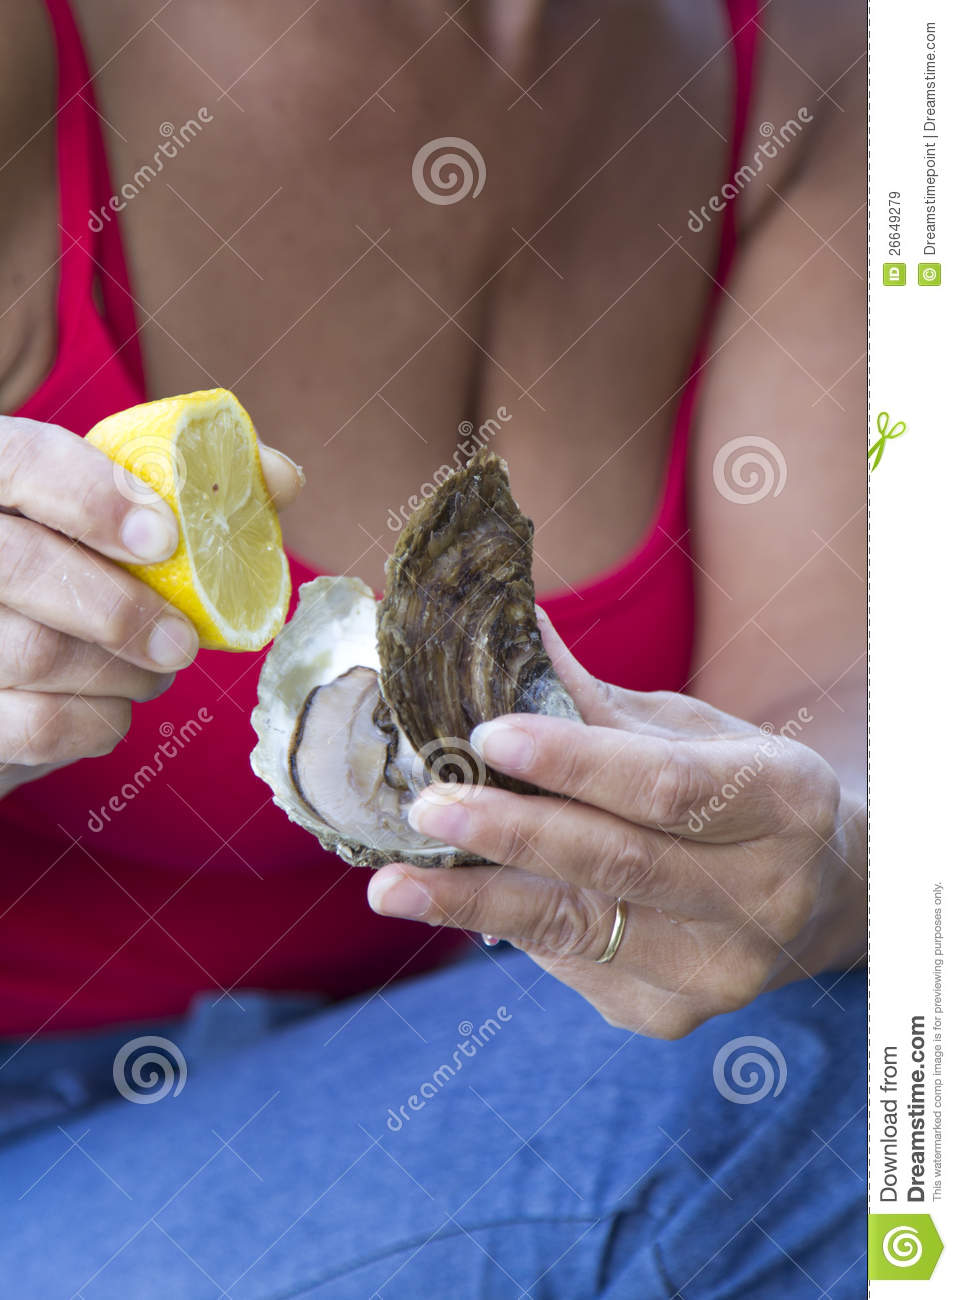 Woman preparing to eat delicious raw oyster with fresh lemon.